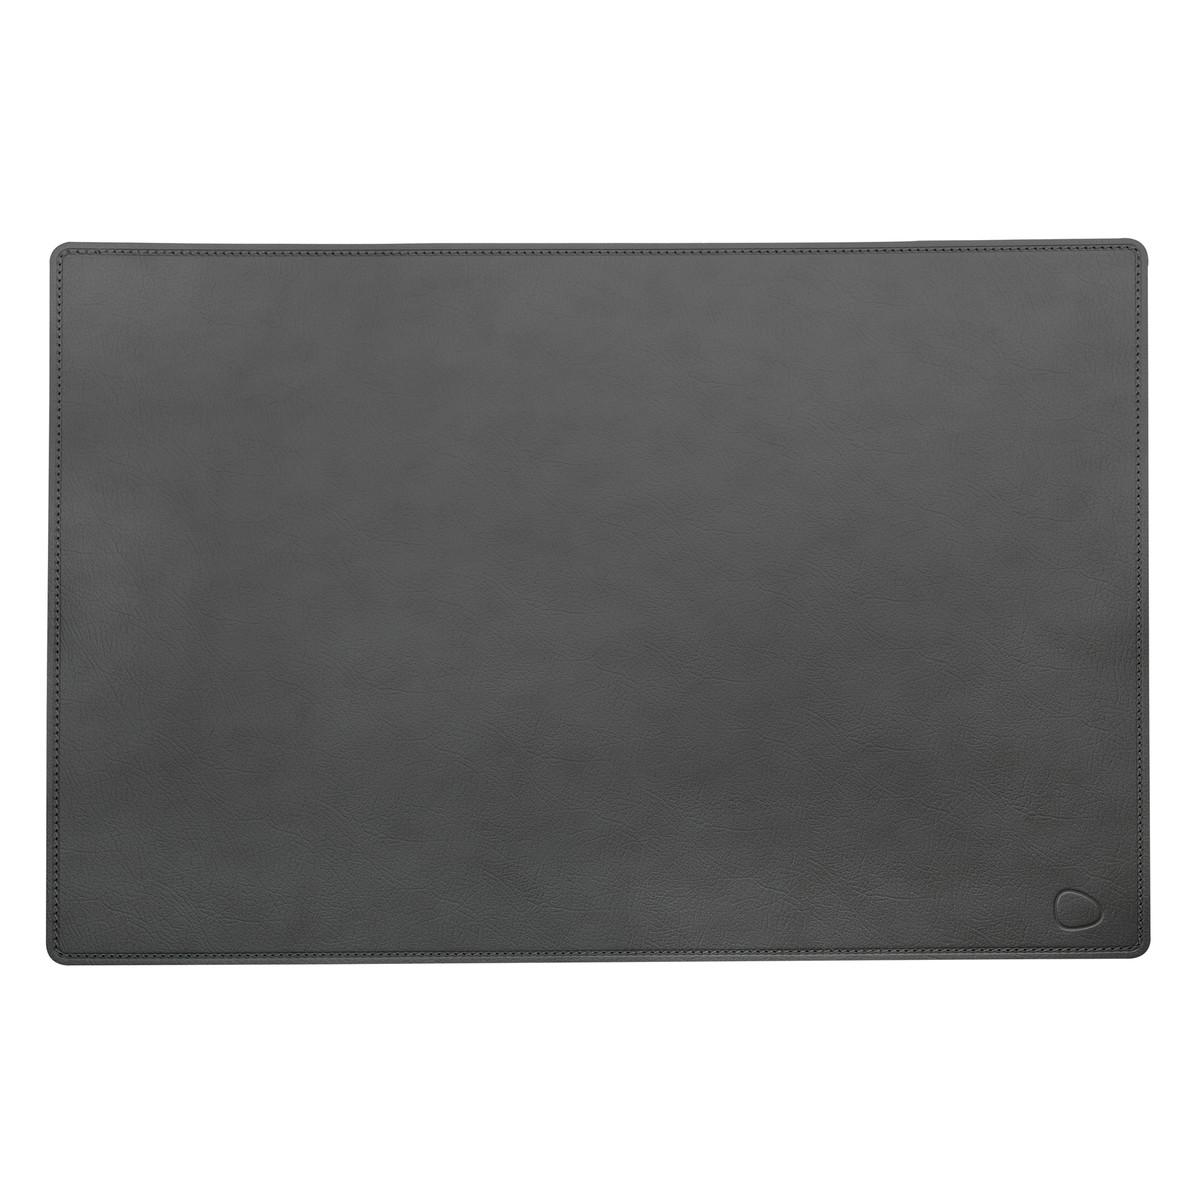 LindDNA - Work Mat Square XXL 54 x 74 cm, Cloud anthrazit / anthrazit